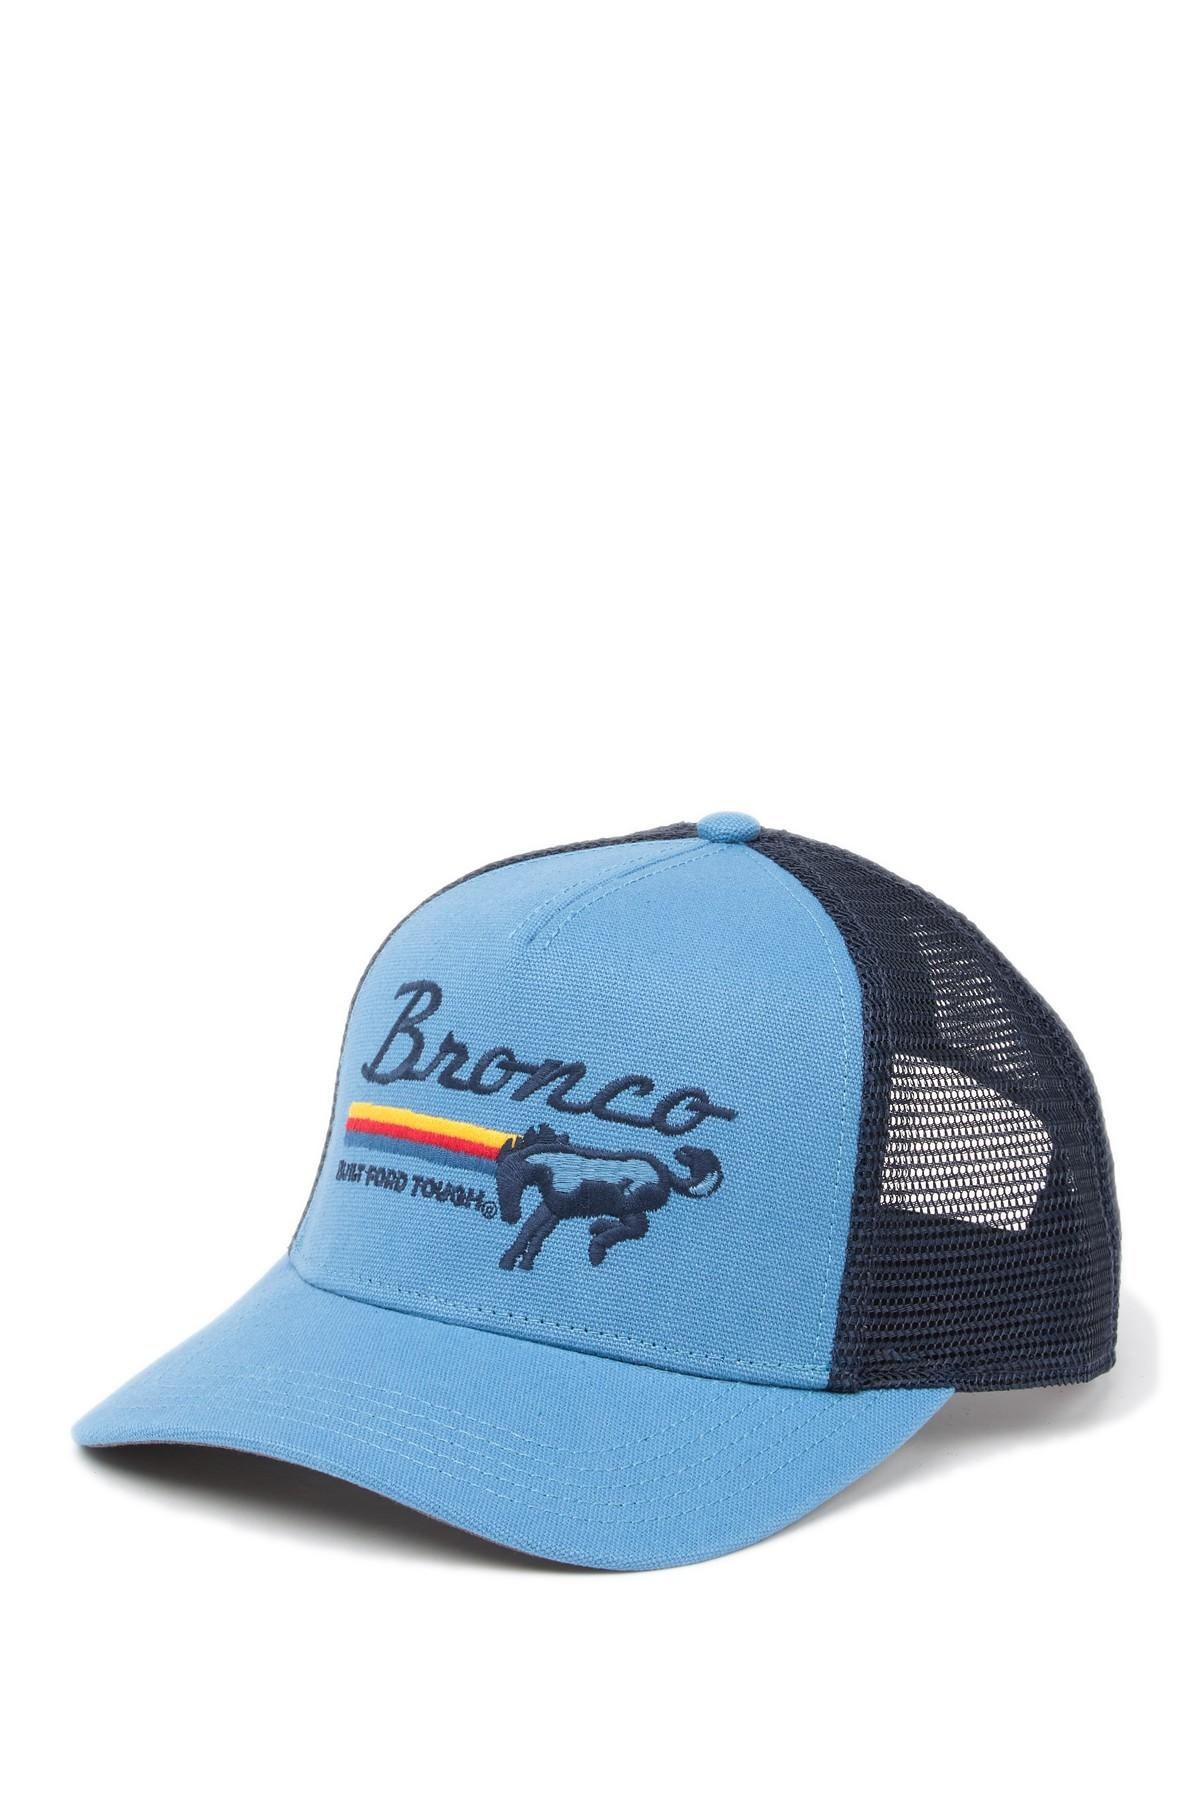 fd388974f American Needle Ford Bronco Ballpark Hat in Blue for Men - Lyst